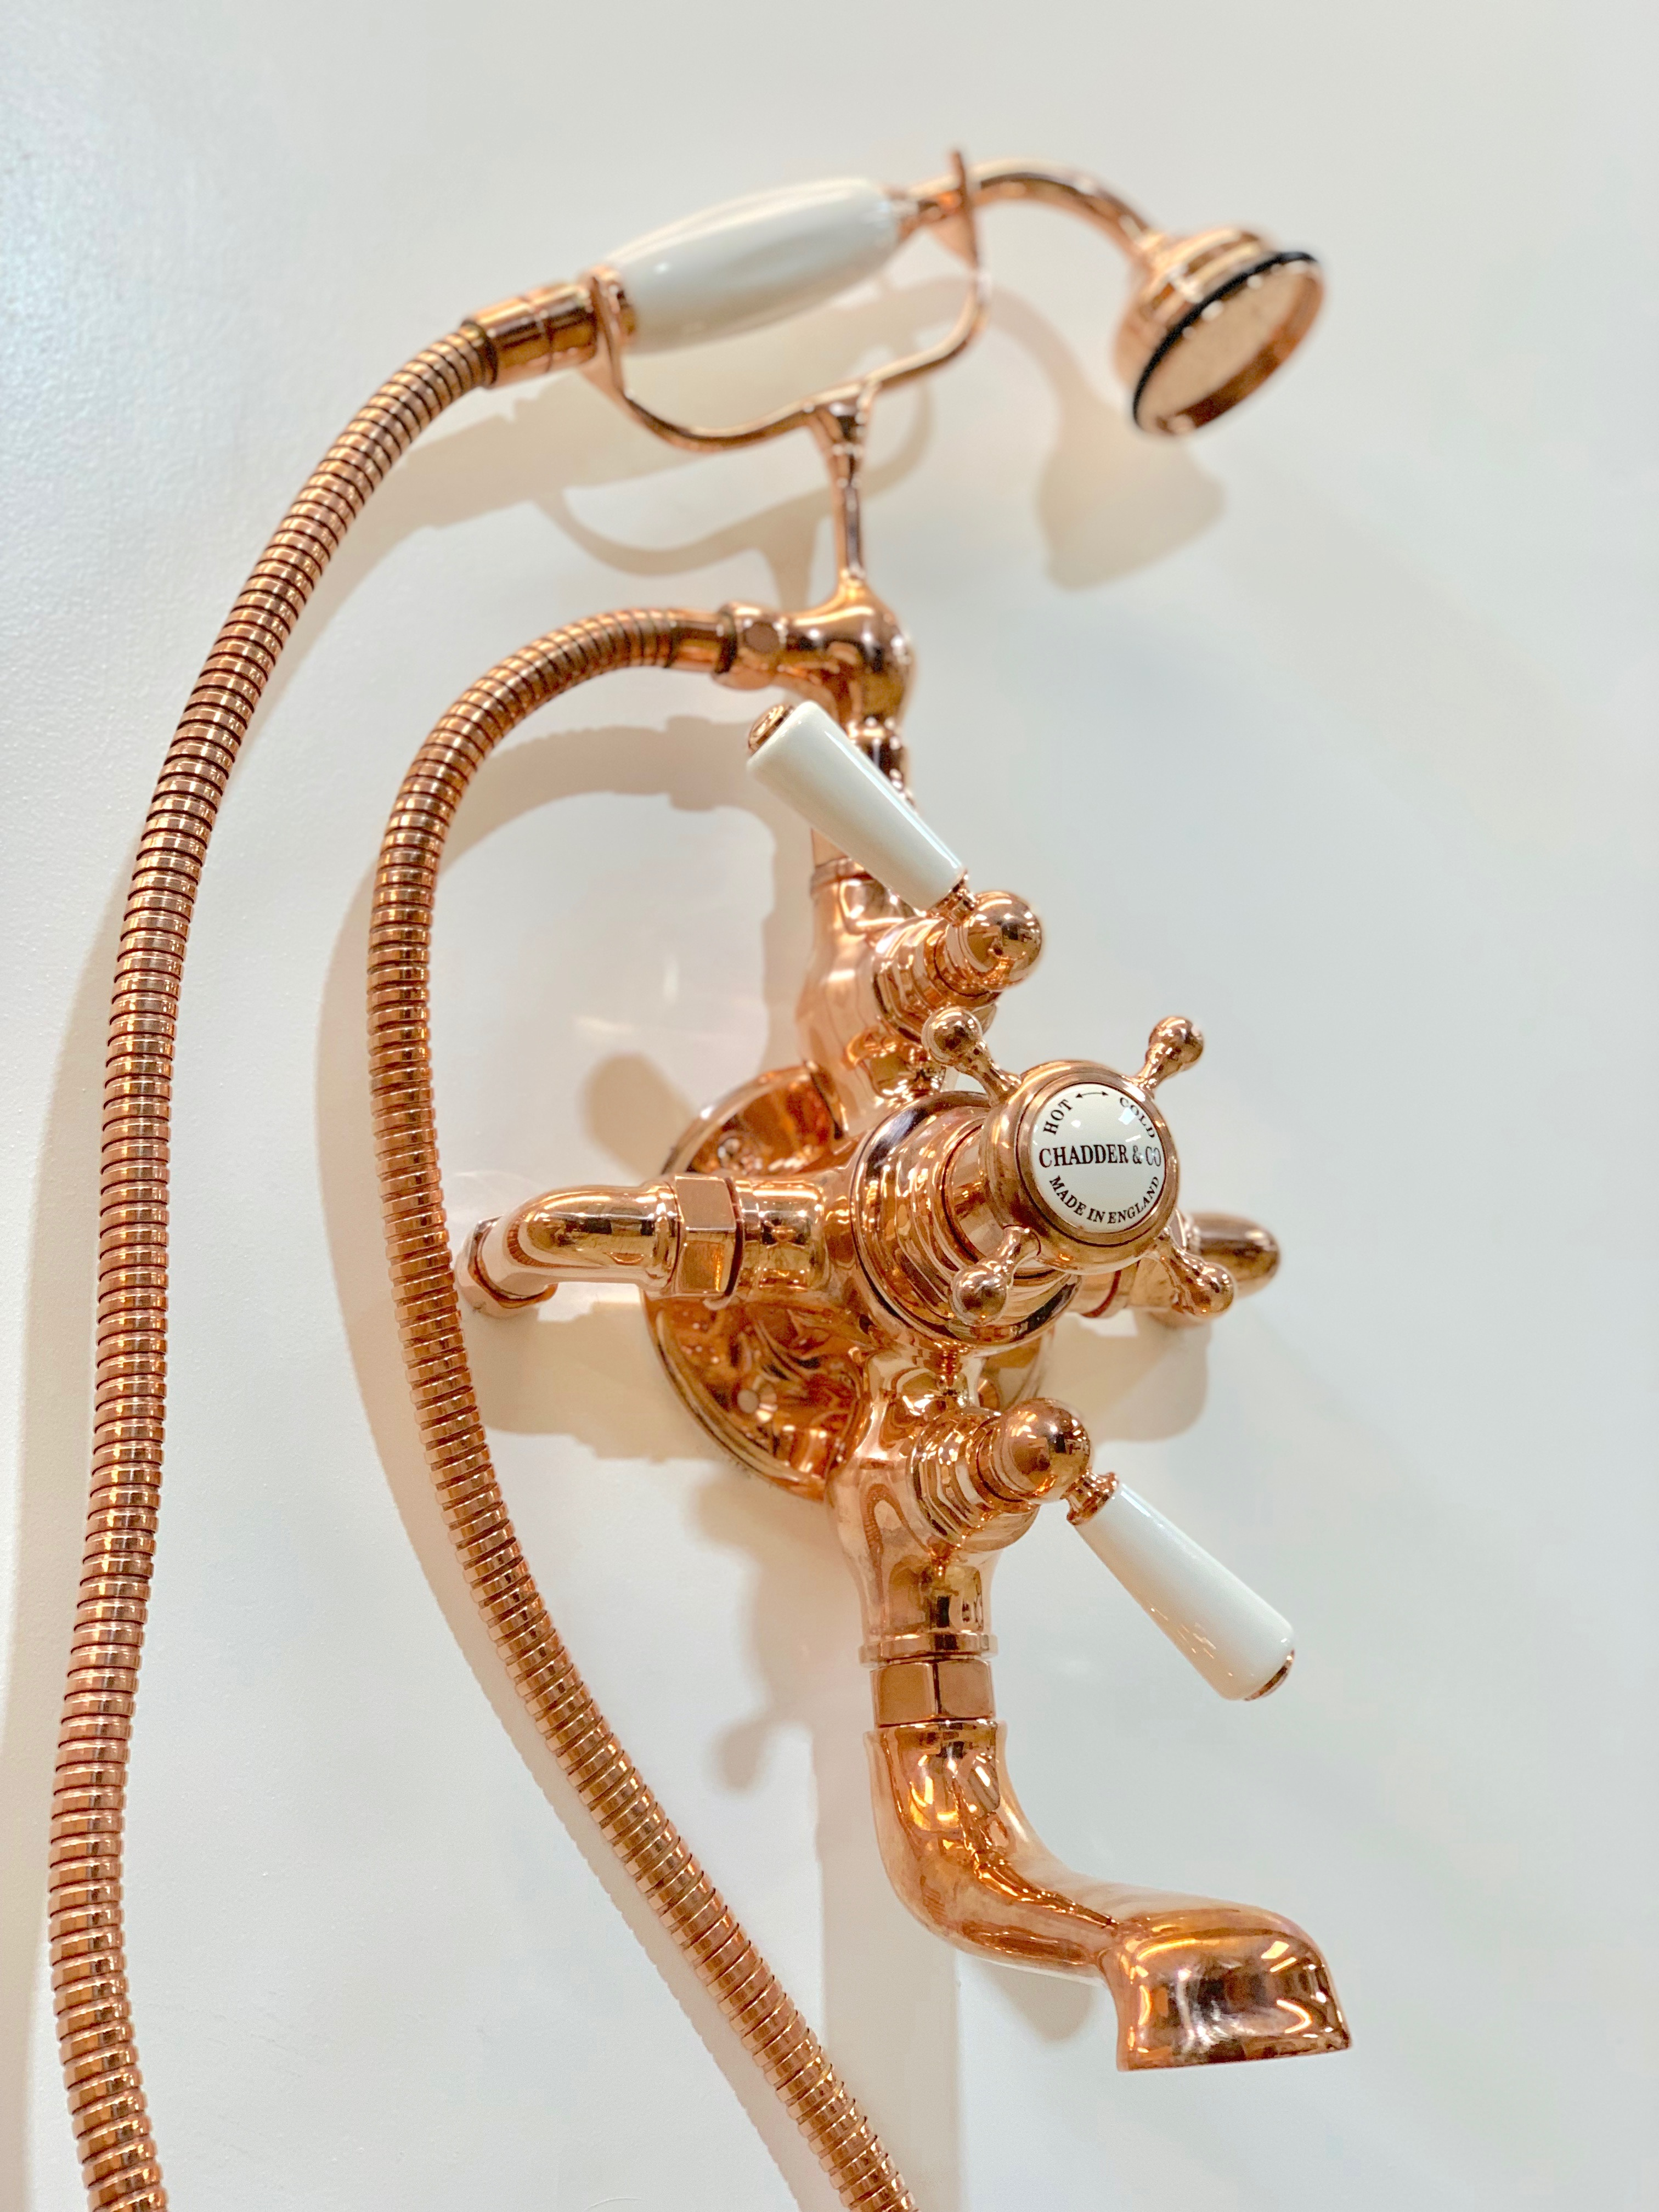 thermostaic bath and shower filler polished copper finish